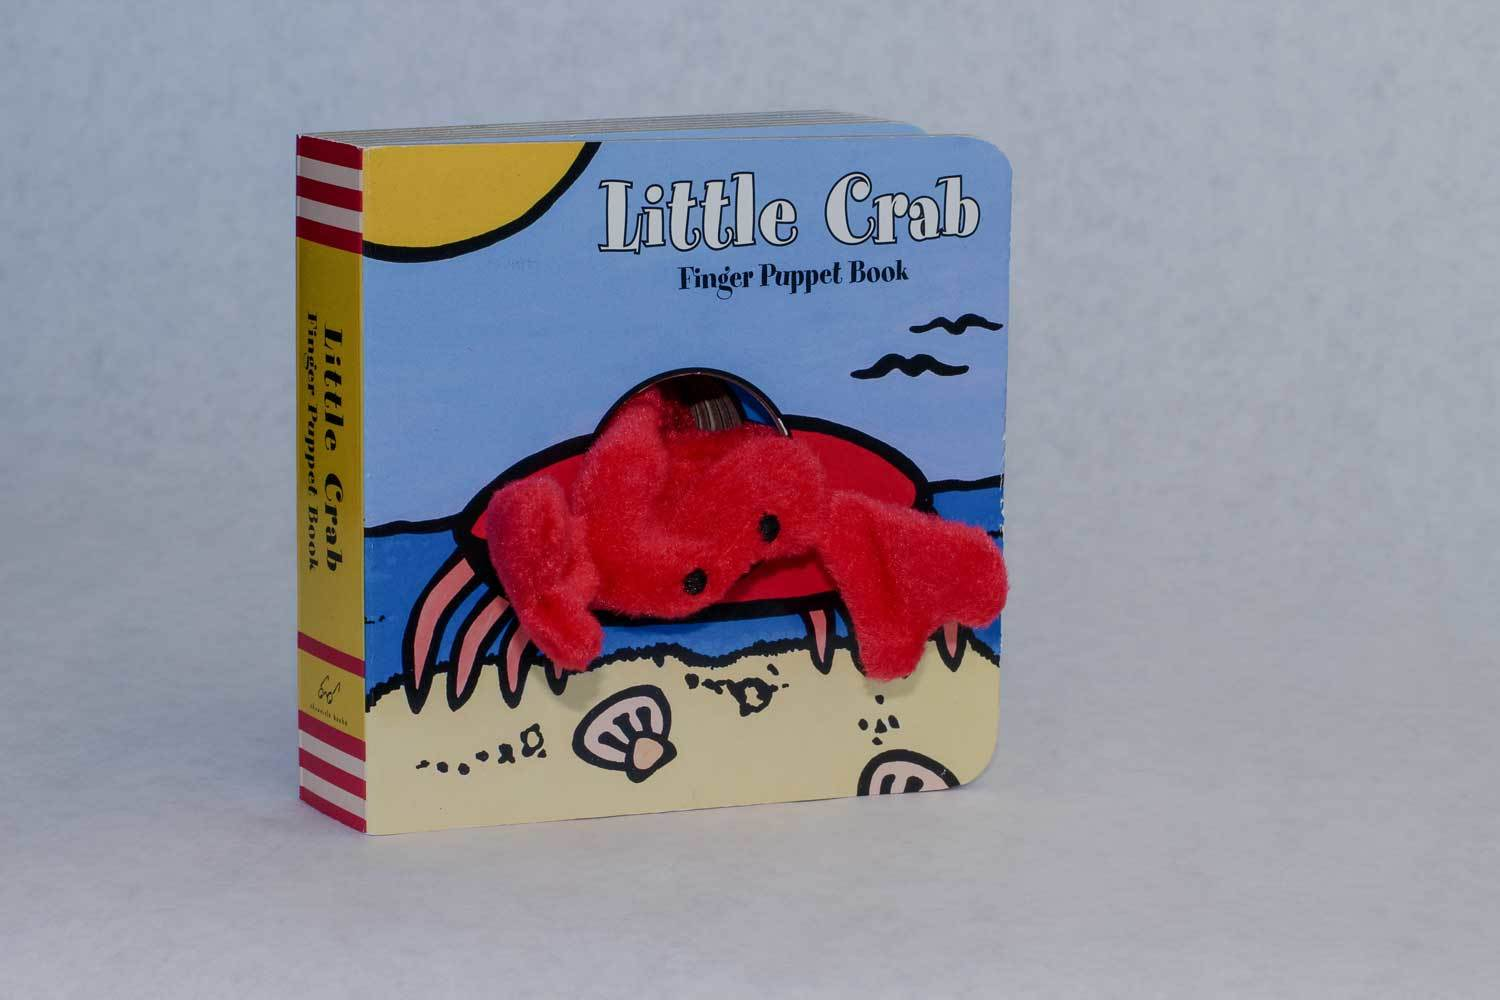 Little Crab Finger Puppet Book 00017